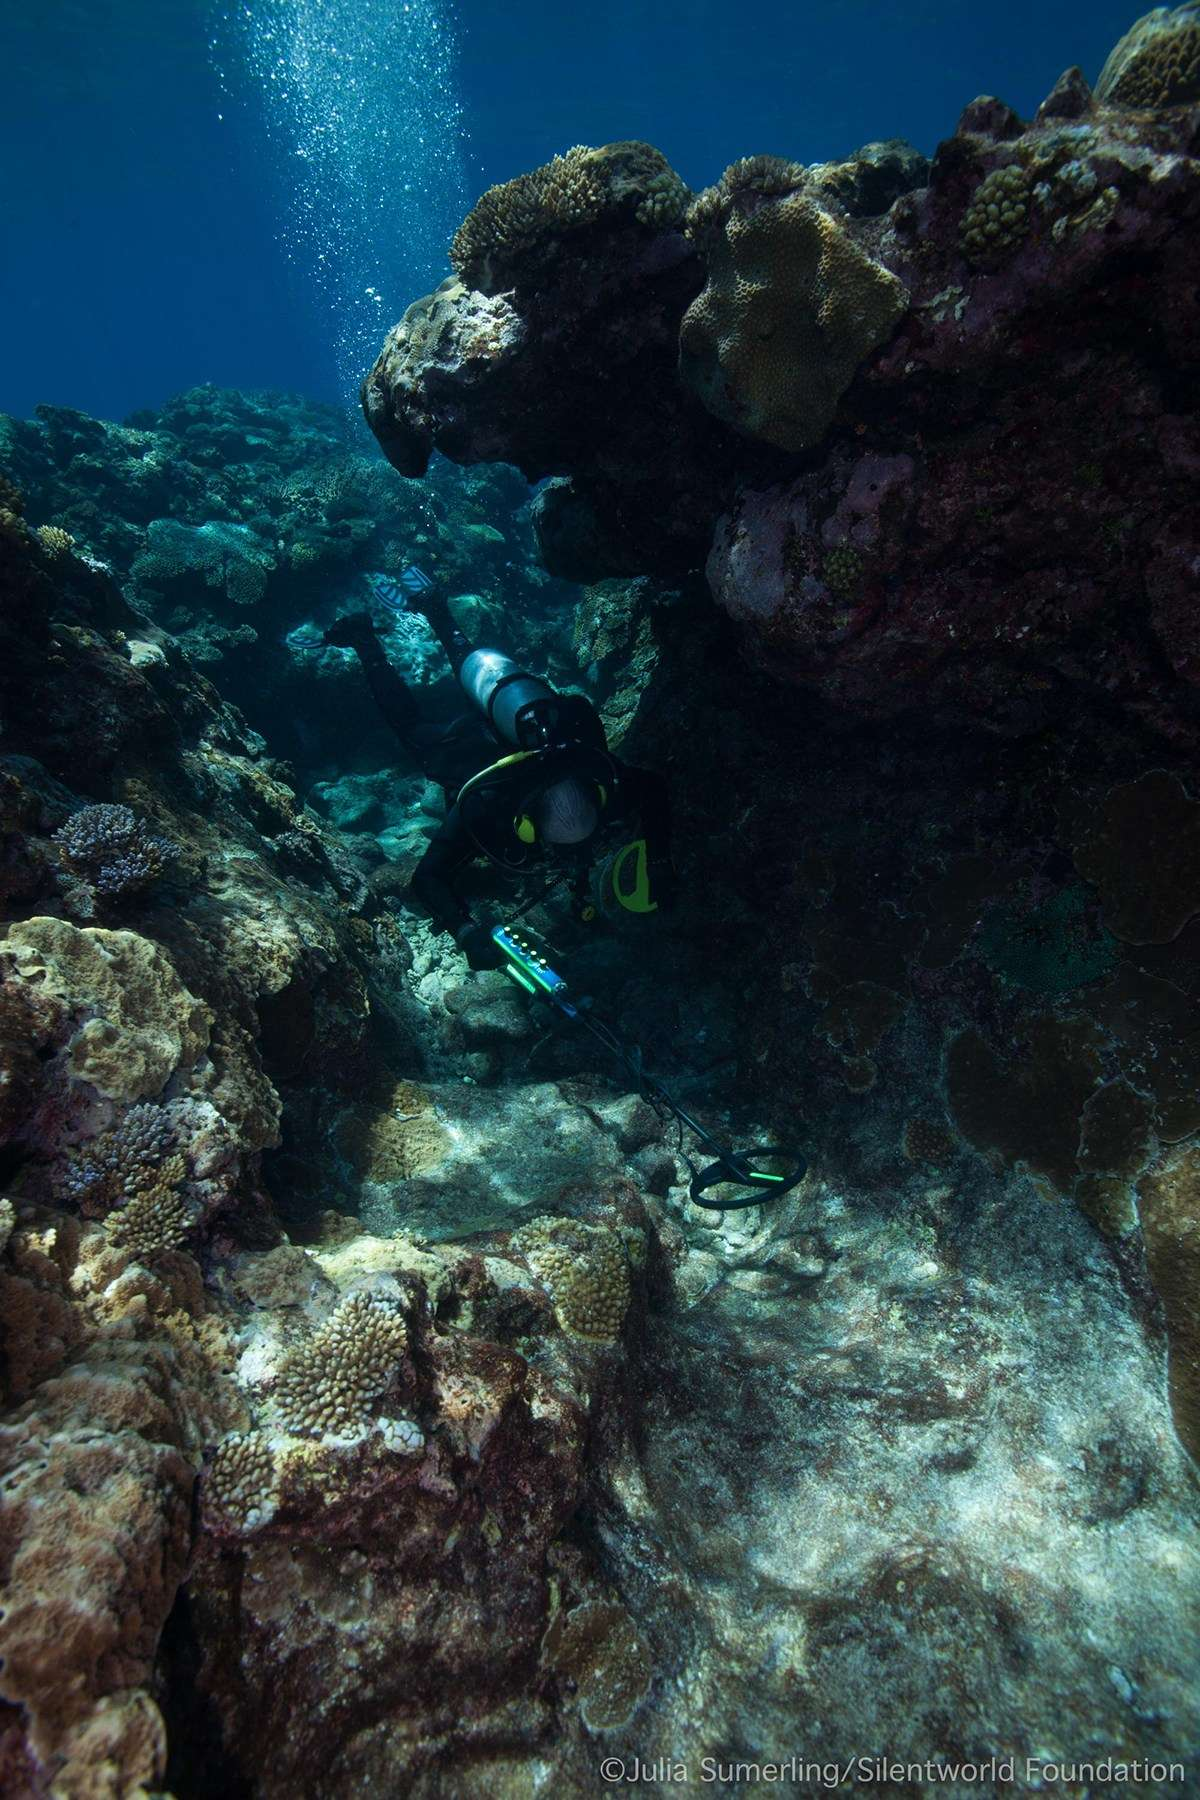 John Mullen conducts a metal detector survey within a reef gully at site KR12. Image: Julia Sumerling/Silentworld Foundation.